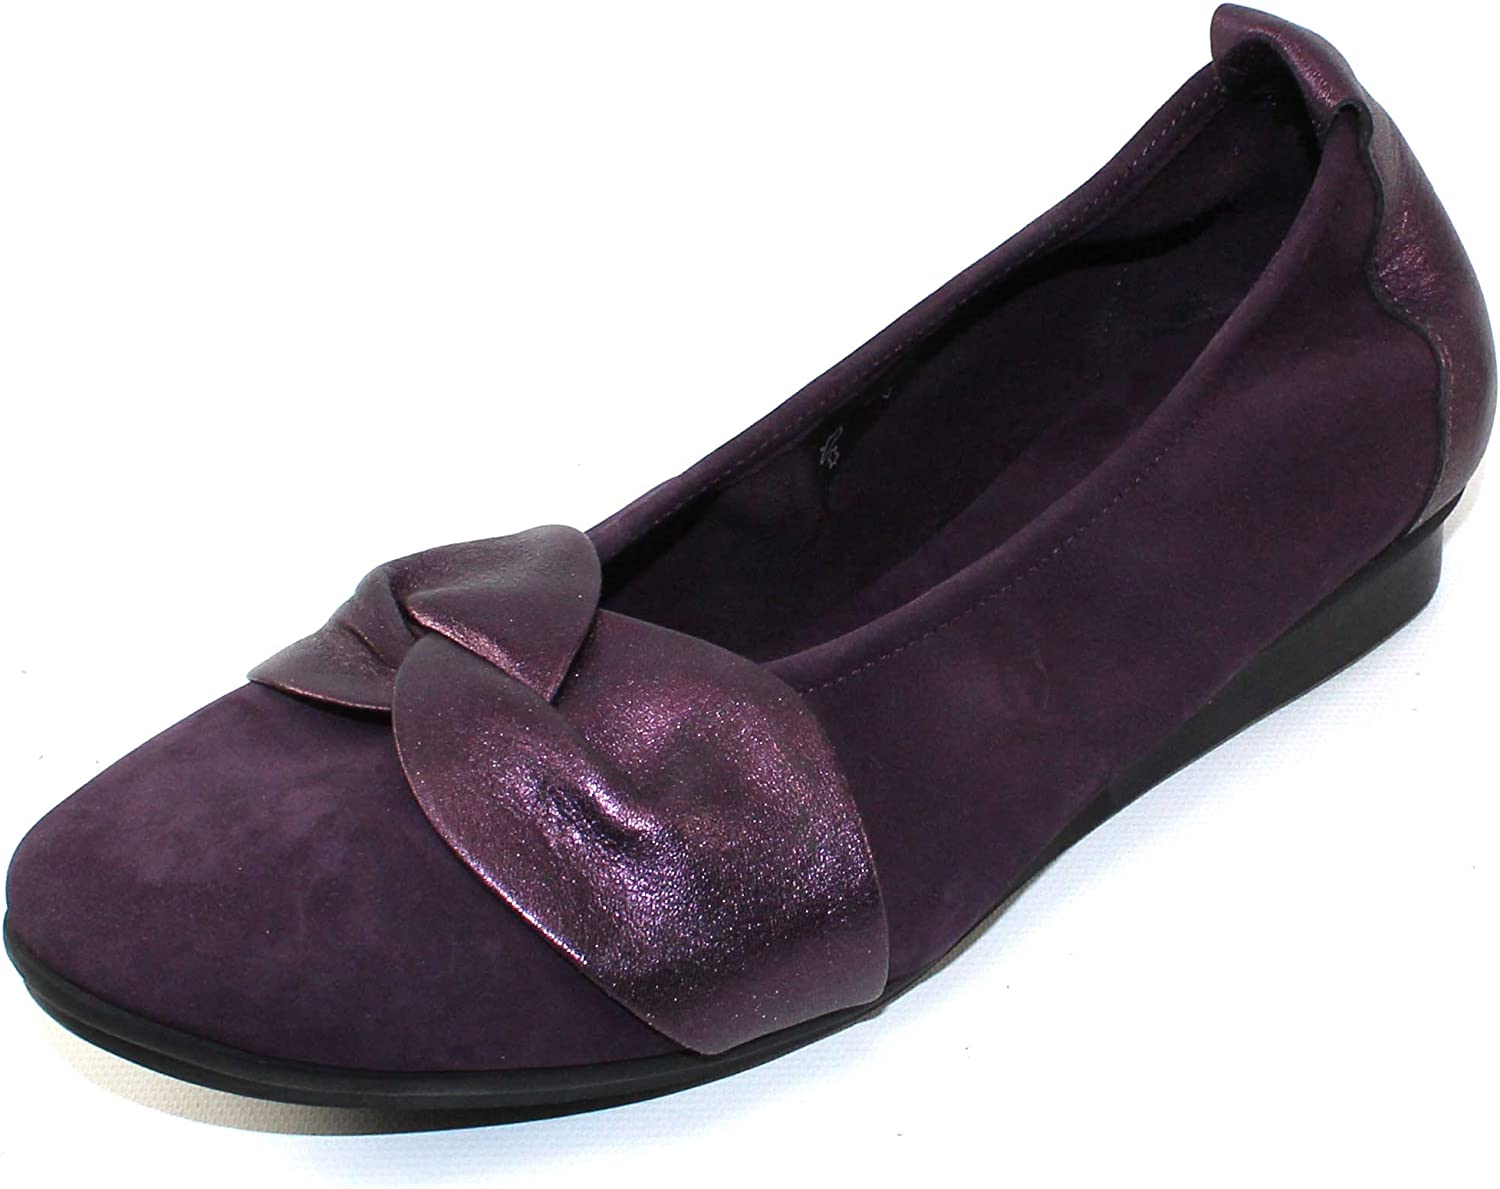 Arche Women's Ninika in Muscat Nubuck Shade Metallic Leather - Eggplant - Size 42 M